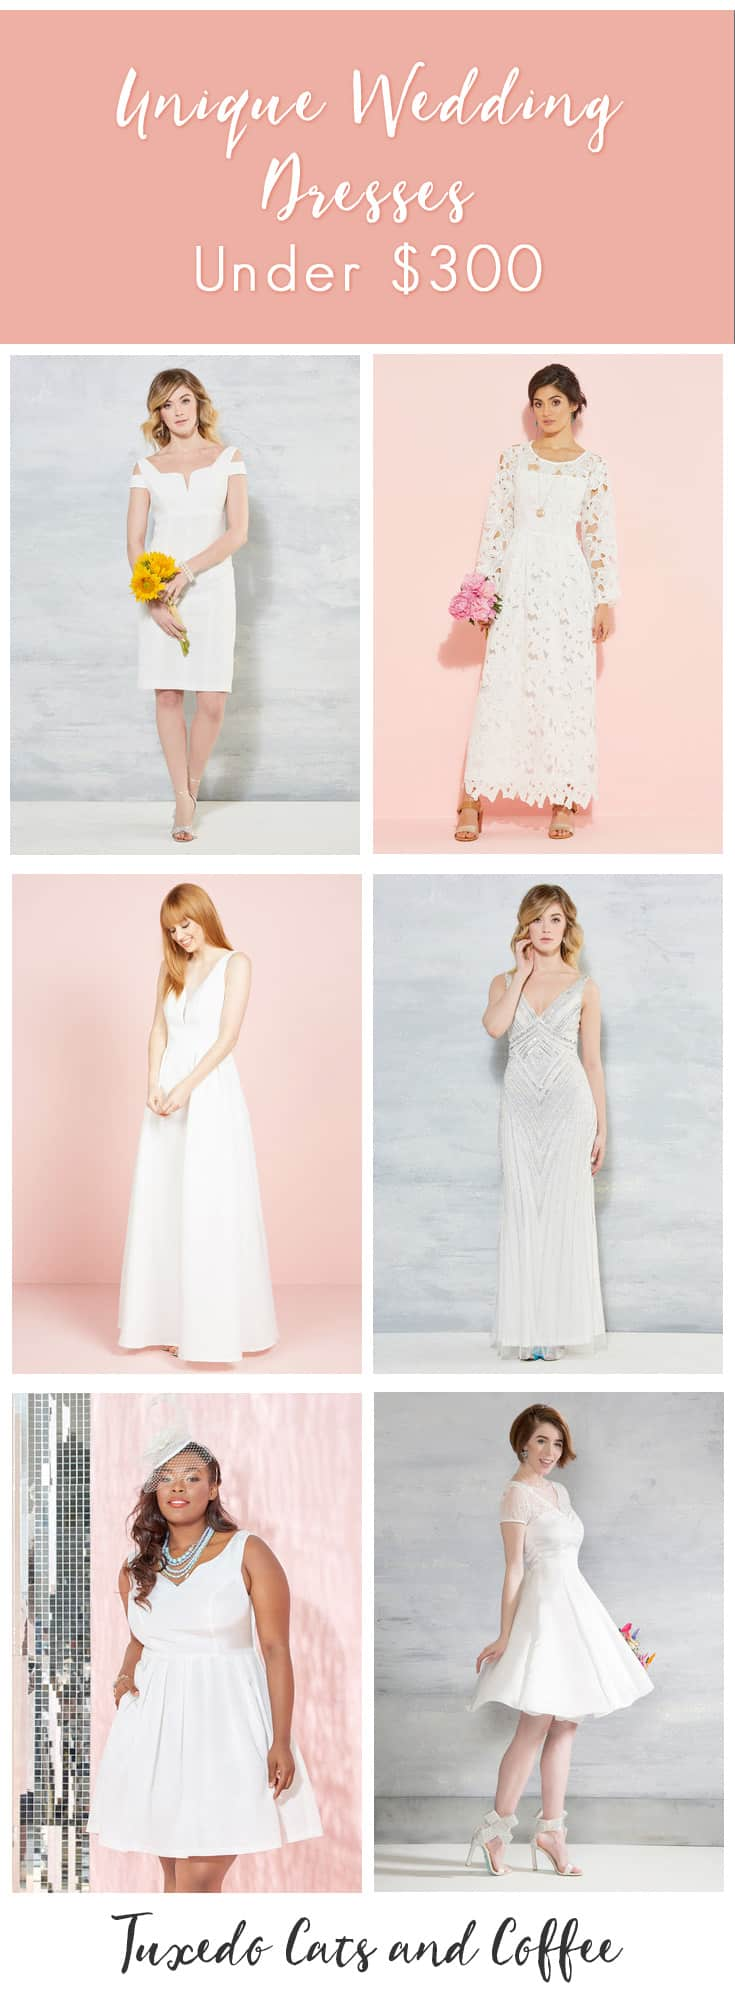 If you want to stand out on your wedding day, try one of these unique wedding dresses. From short to floor length and white to splashes of color, these unique wedding dresses won't break the bank at $300 or less each.